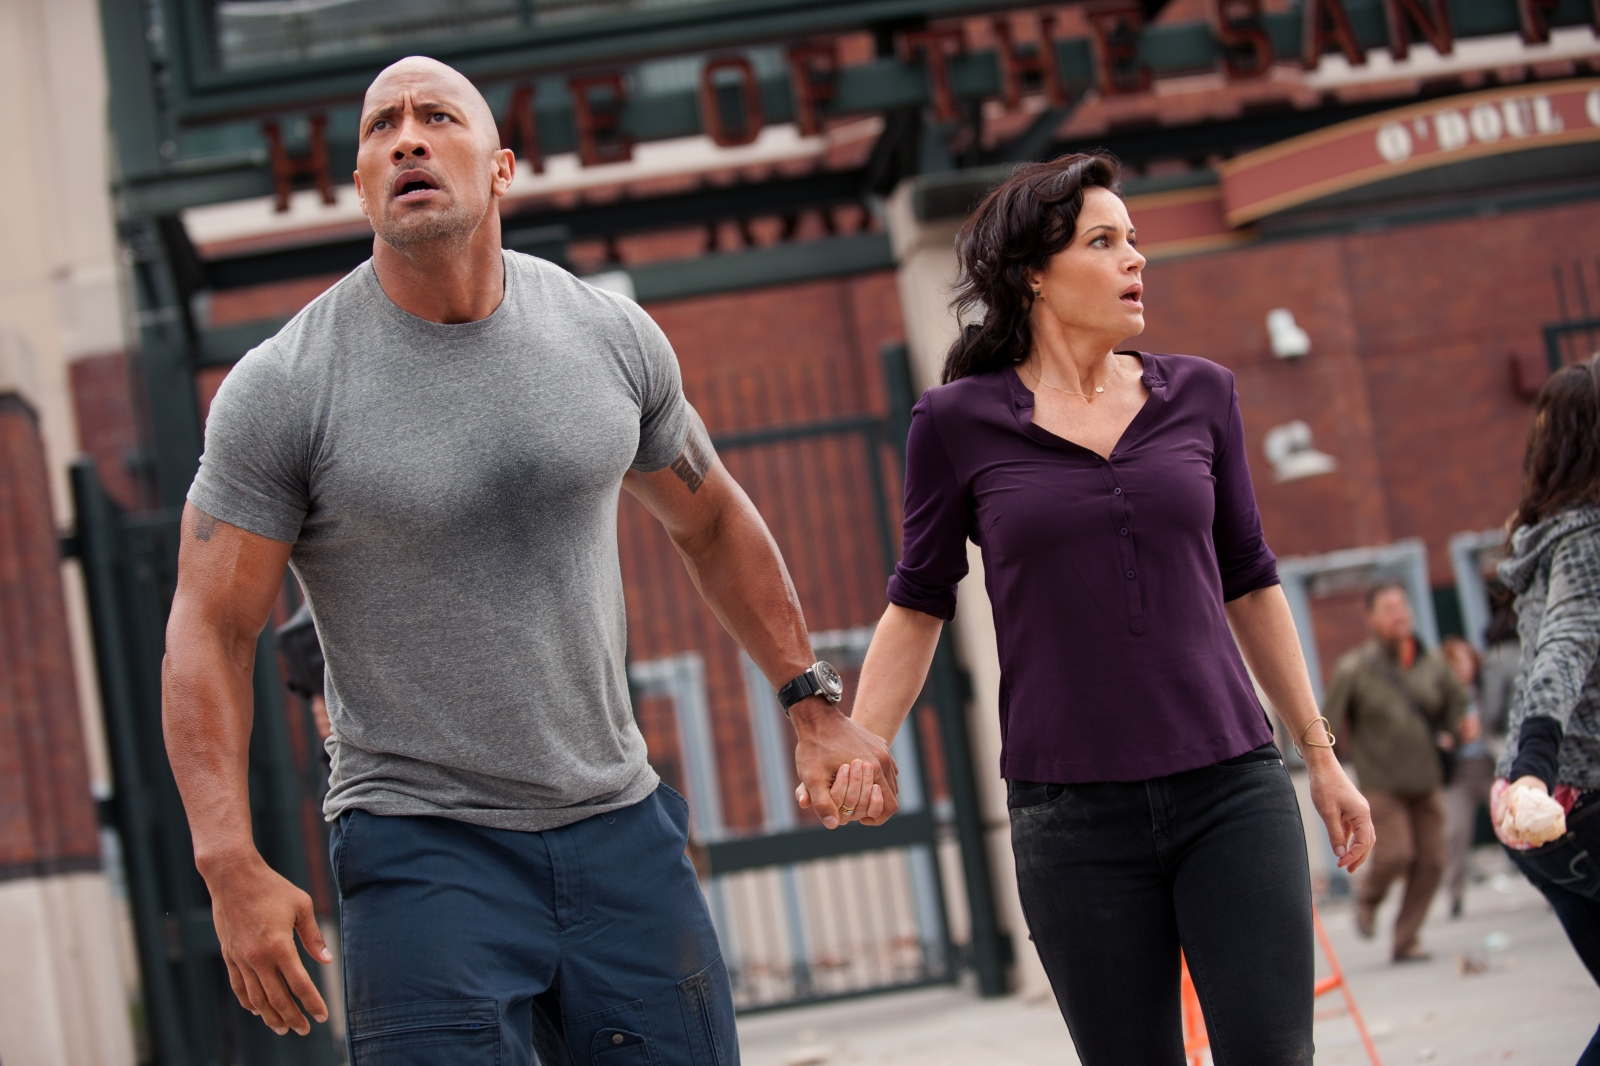 Dwayne Johnson/Carla Gugino in San Andreas